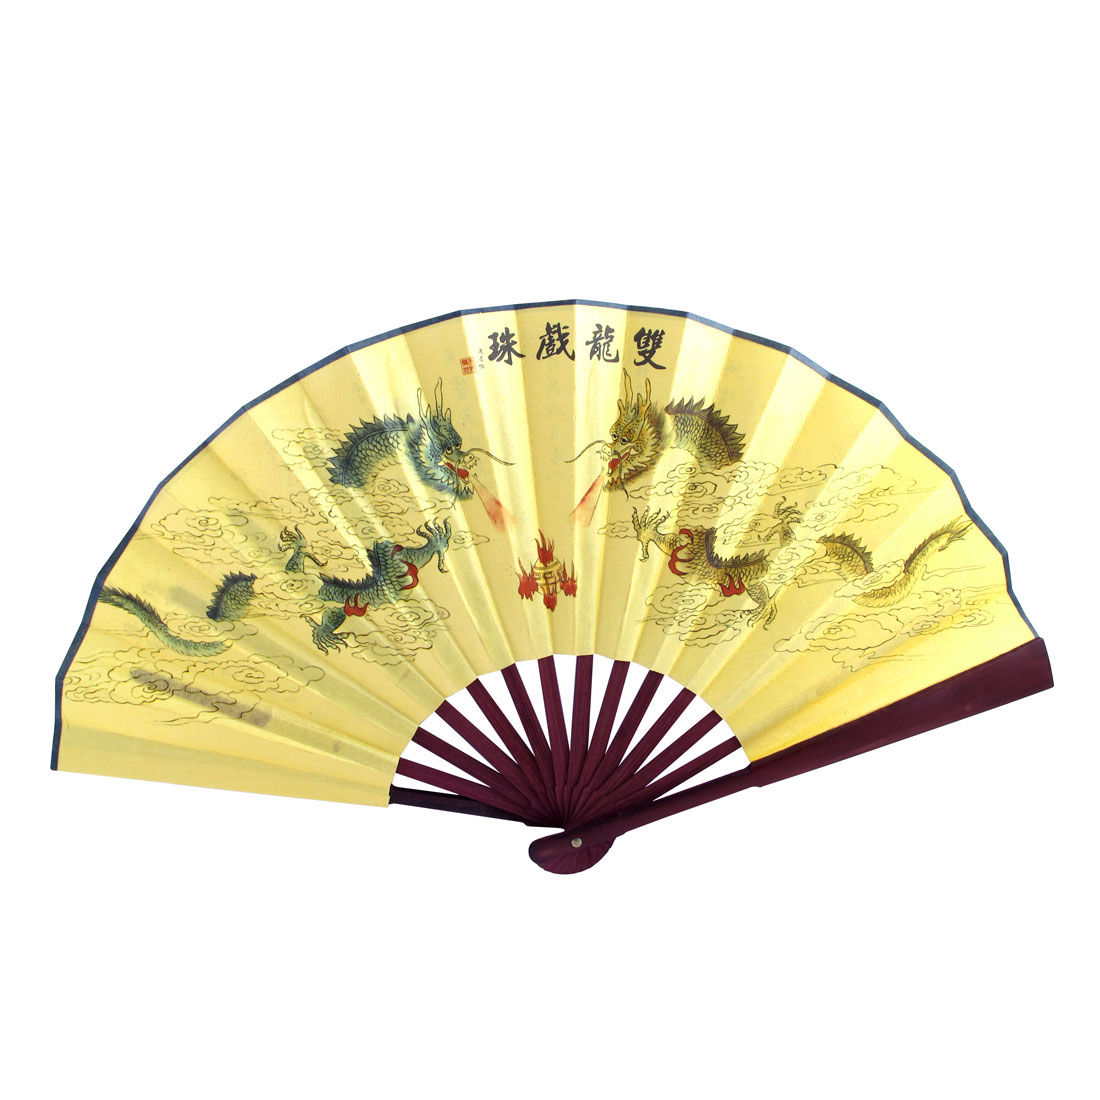 Bamboo Handle Dragon Chinese Poem Print Folding Hand Fan 47cm Yellow